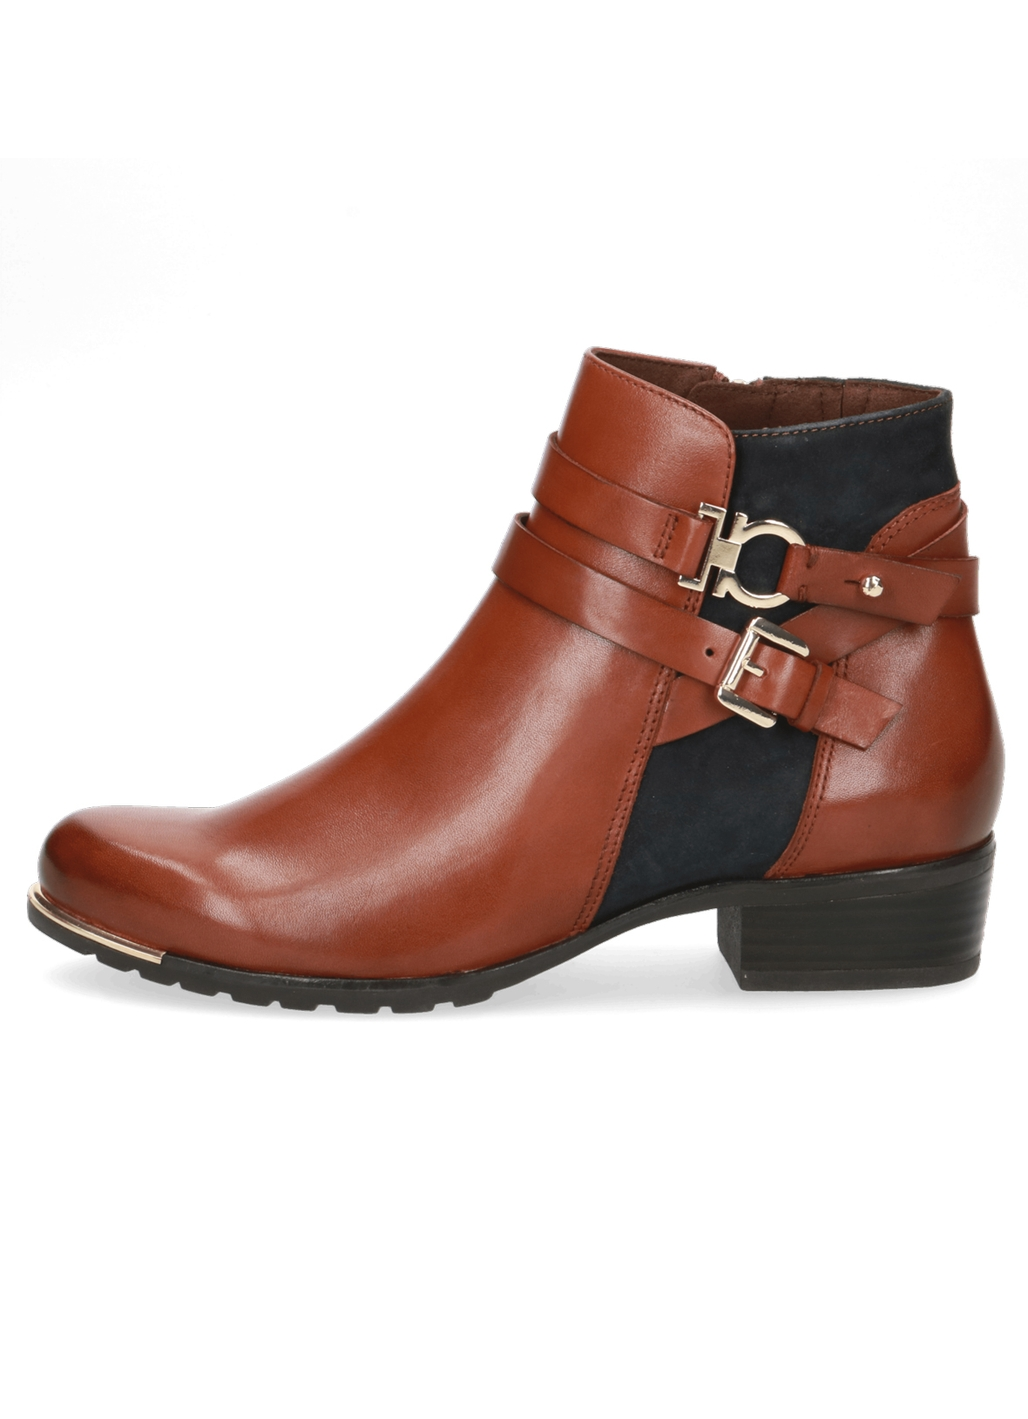 Caprice Miley Leather Ankle Boots in Cognac